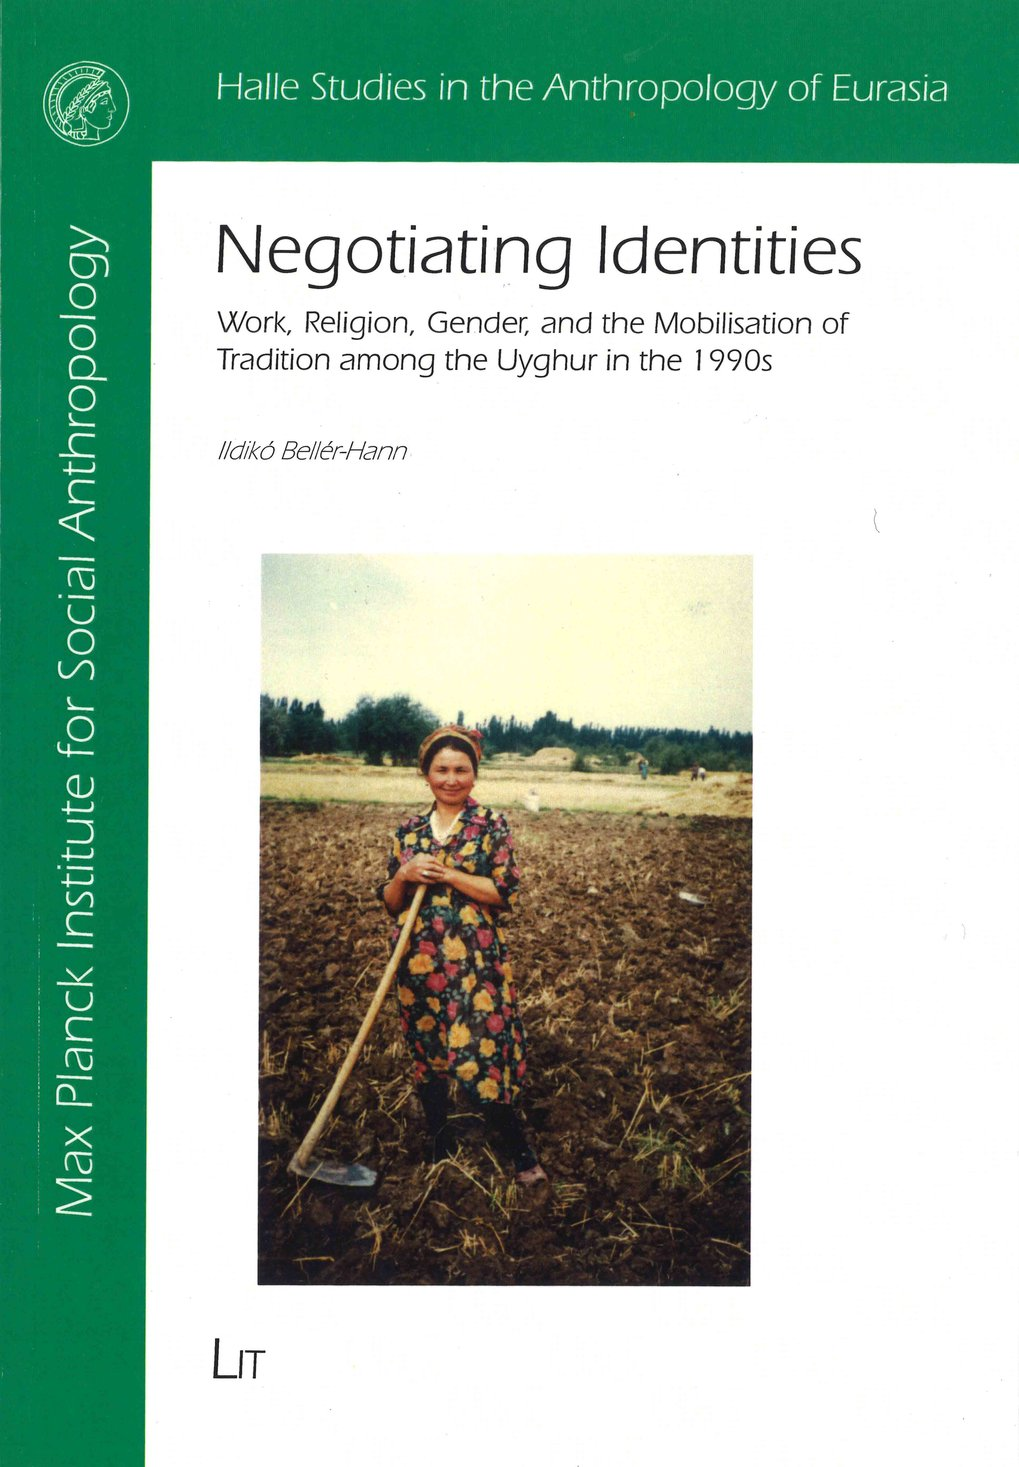 Negotiating Identities. Work, religion, gender, and the mobilisation of tradition among the Uyghur in the 1990s